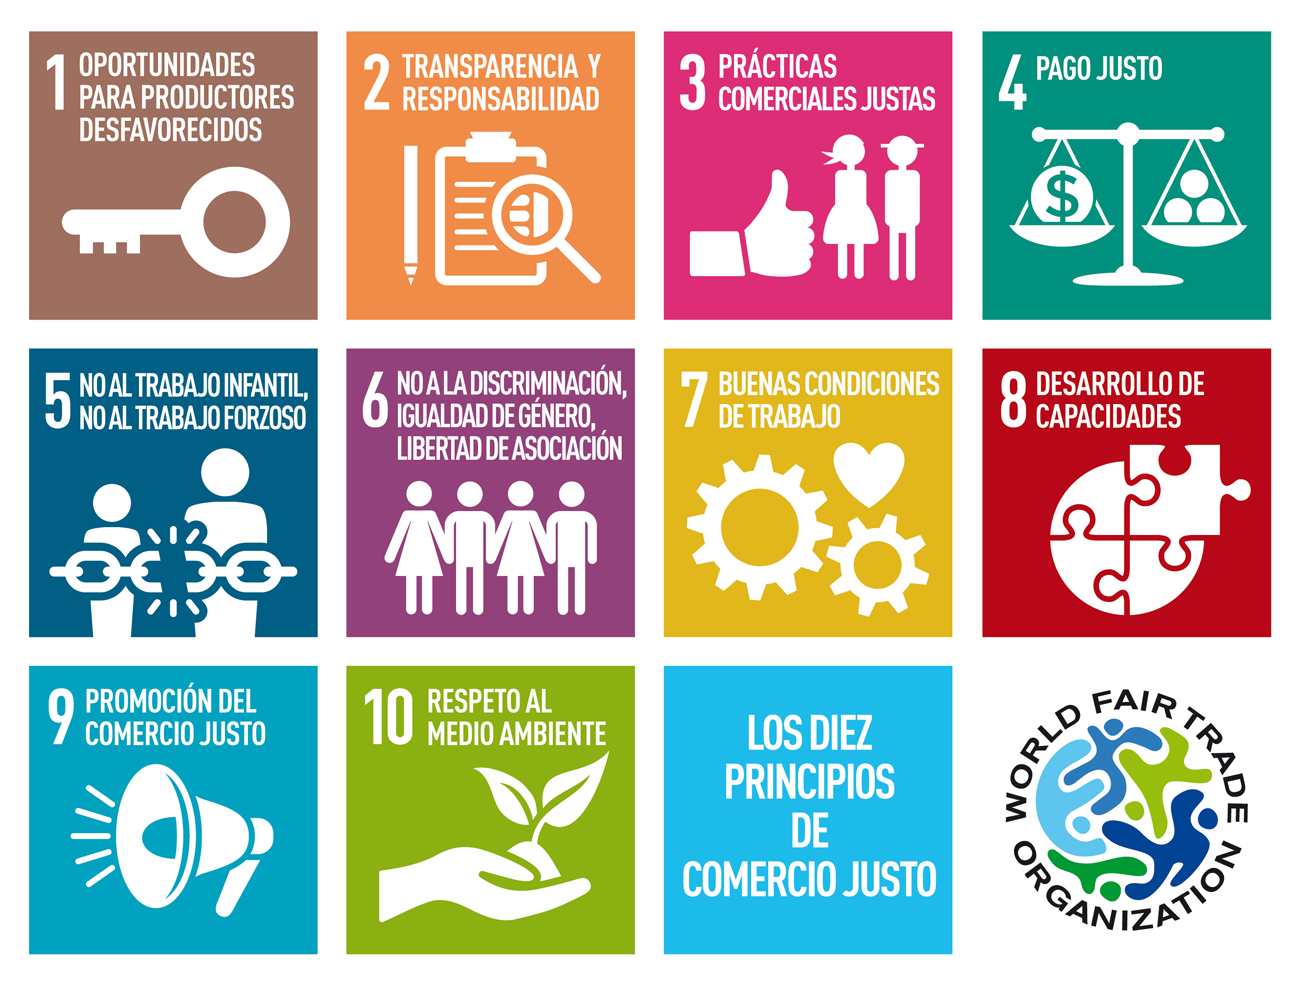 fair-trade-principles-icons_spanish